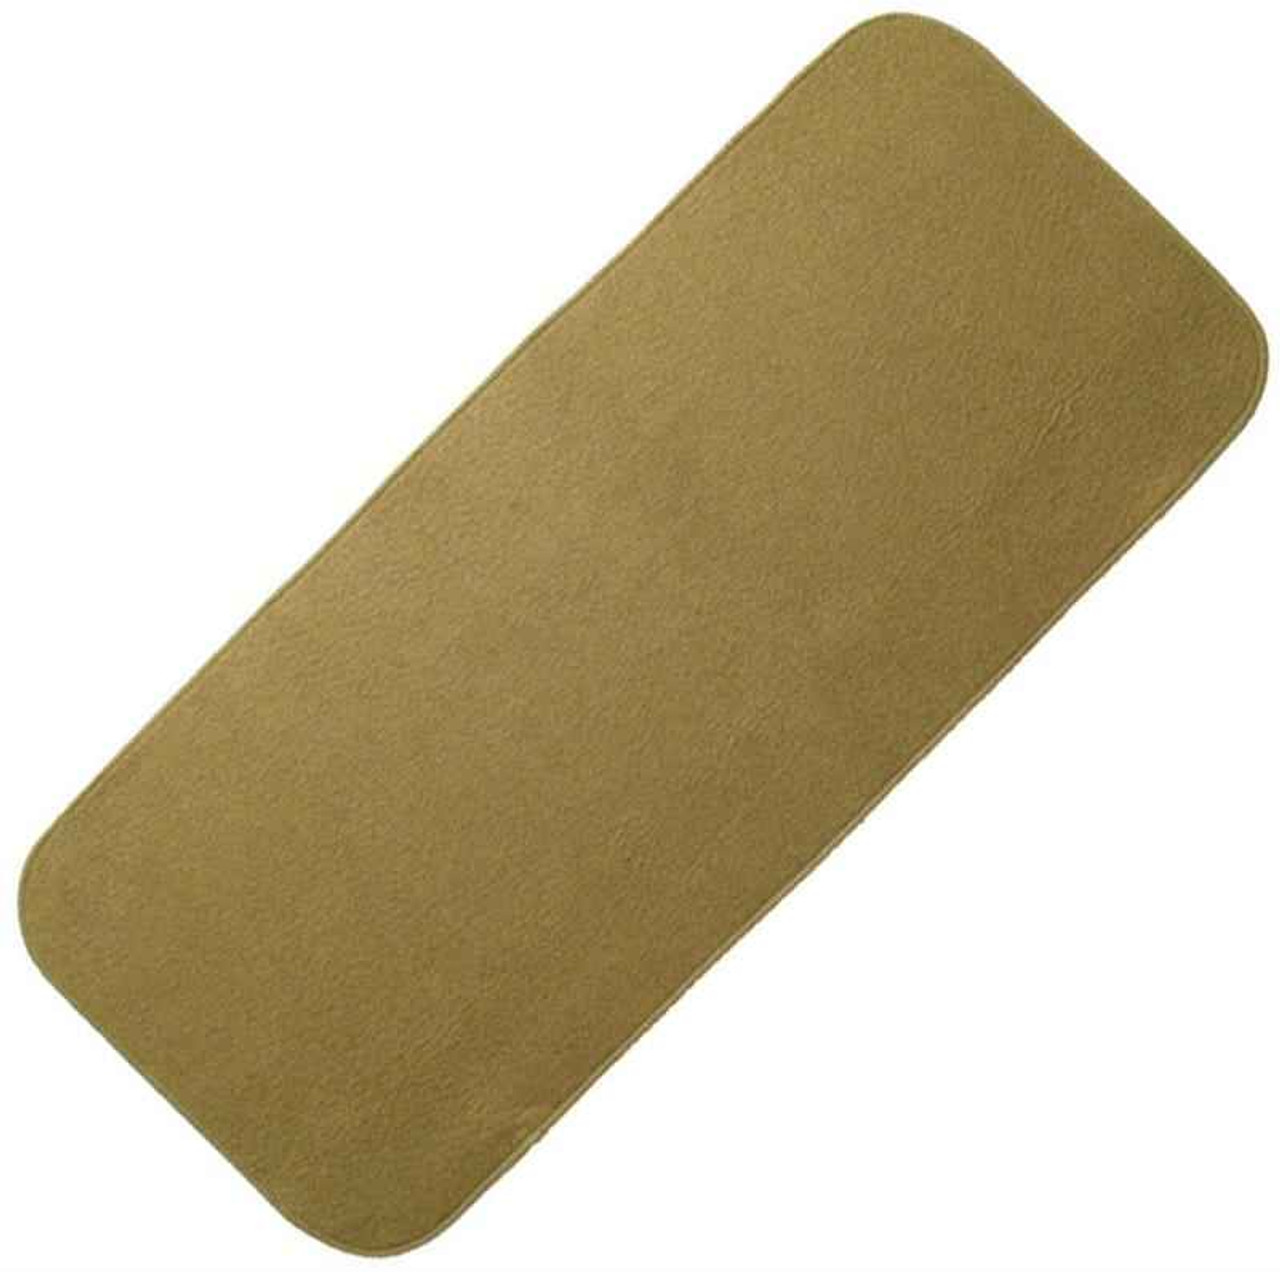 "ABKT AB055T Tac Tactical Gun Cleaning Mat - 28"" x 12""., Coyote Brown"